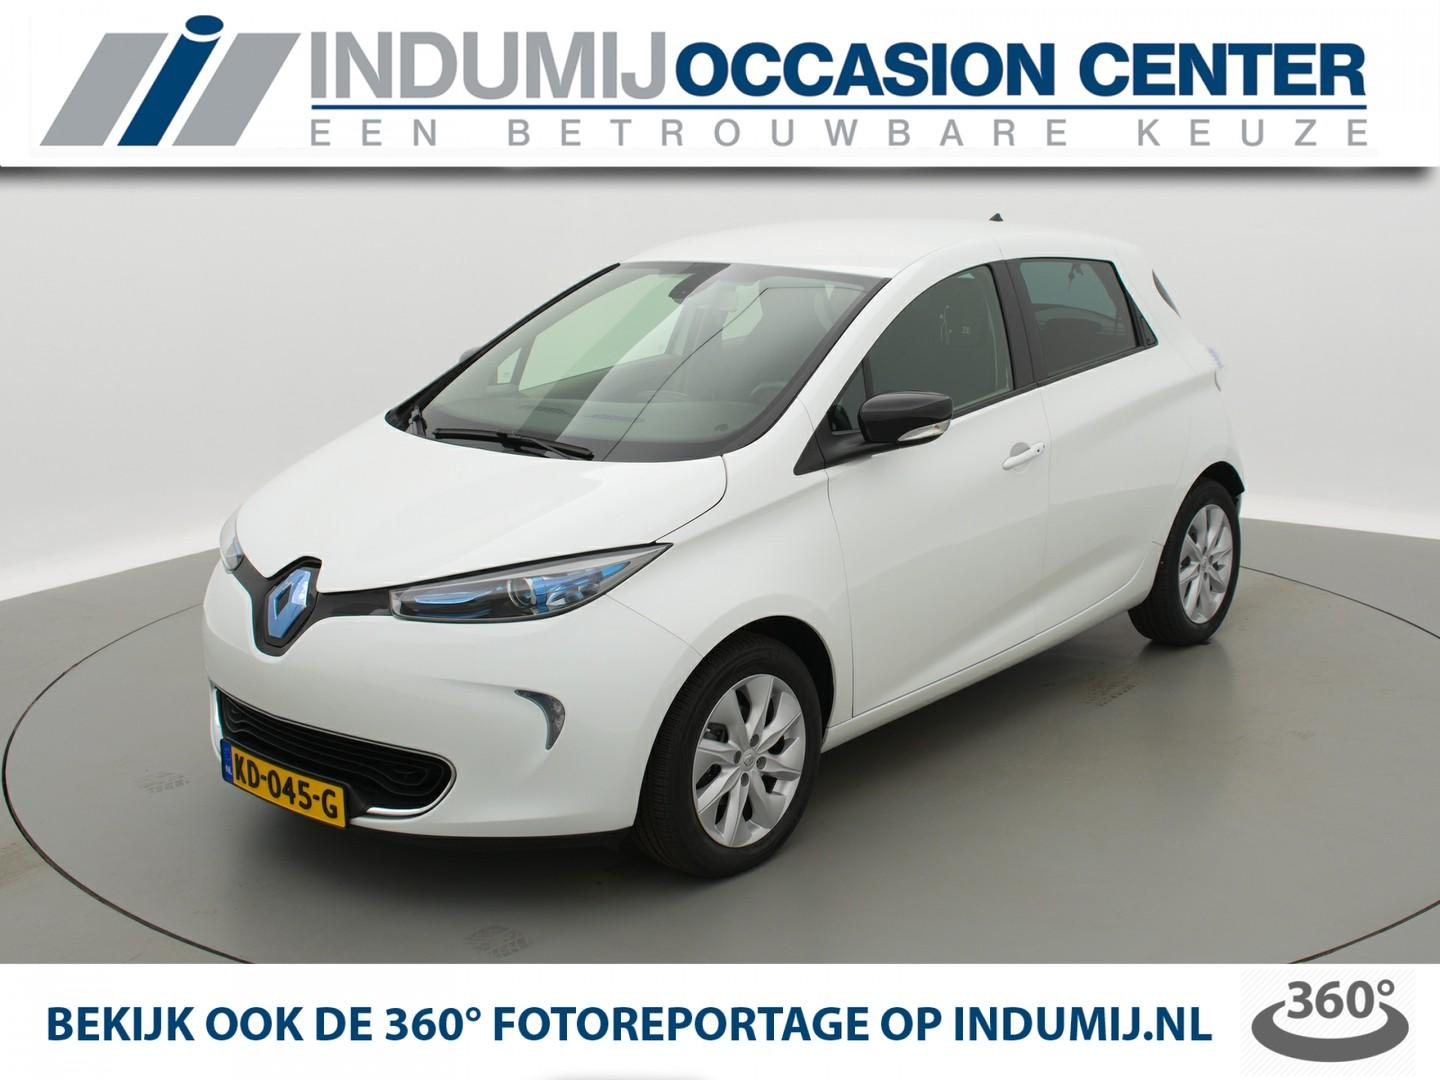 Renault Zoe Q210 zen quickcharge 22 kwh (ex accu) automaat // navi / camera / climate control / keyless